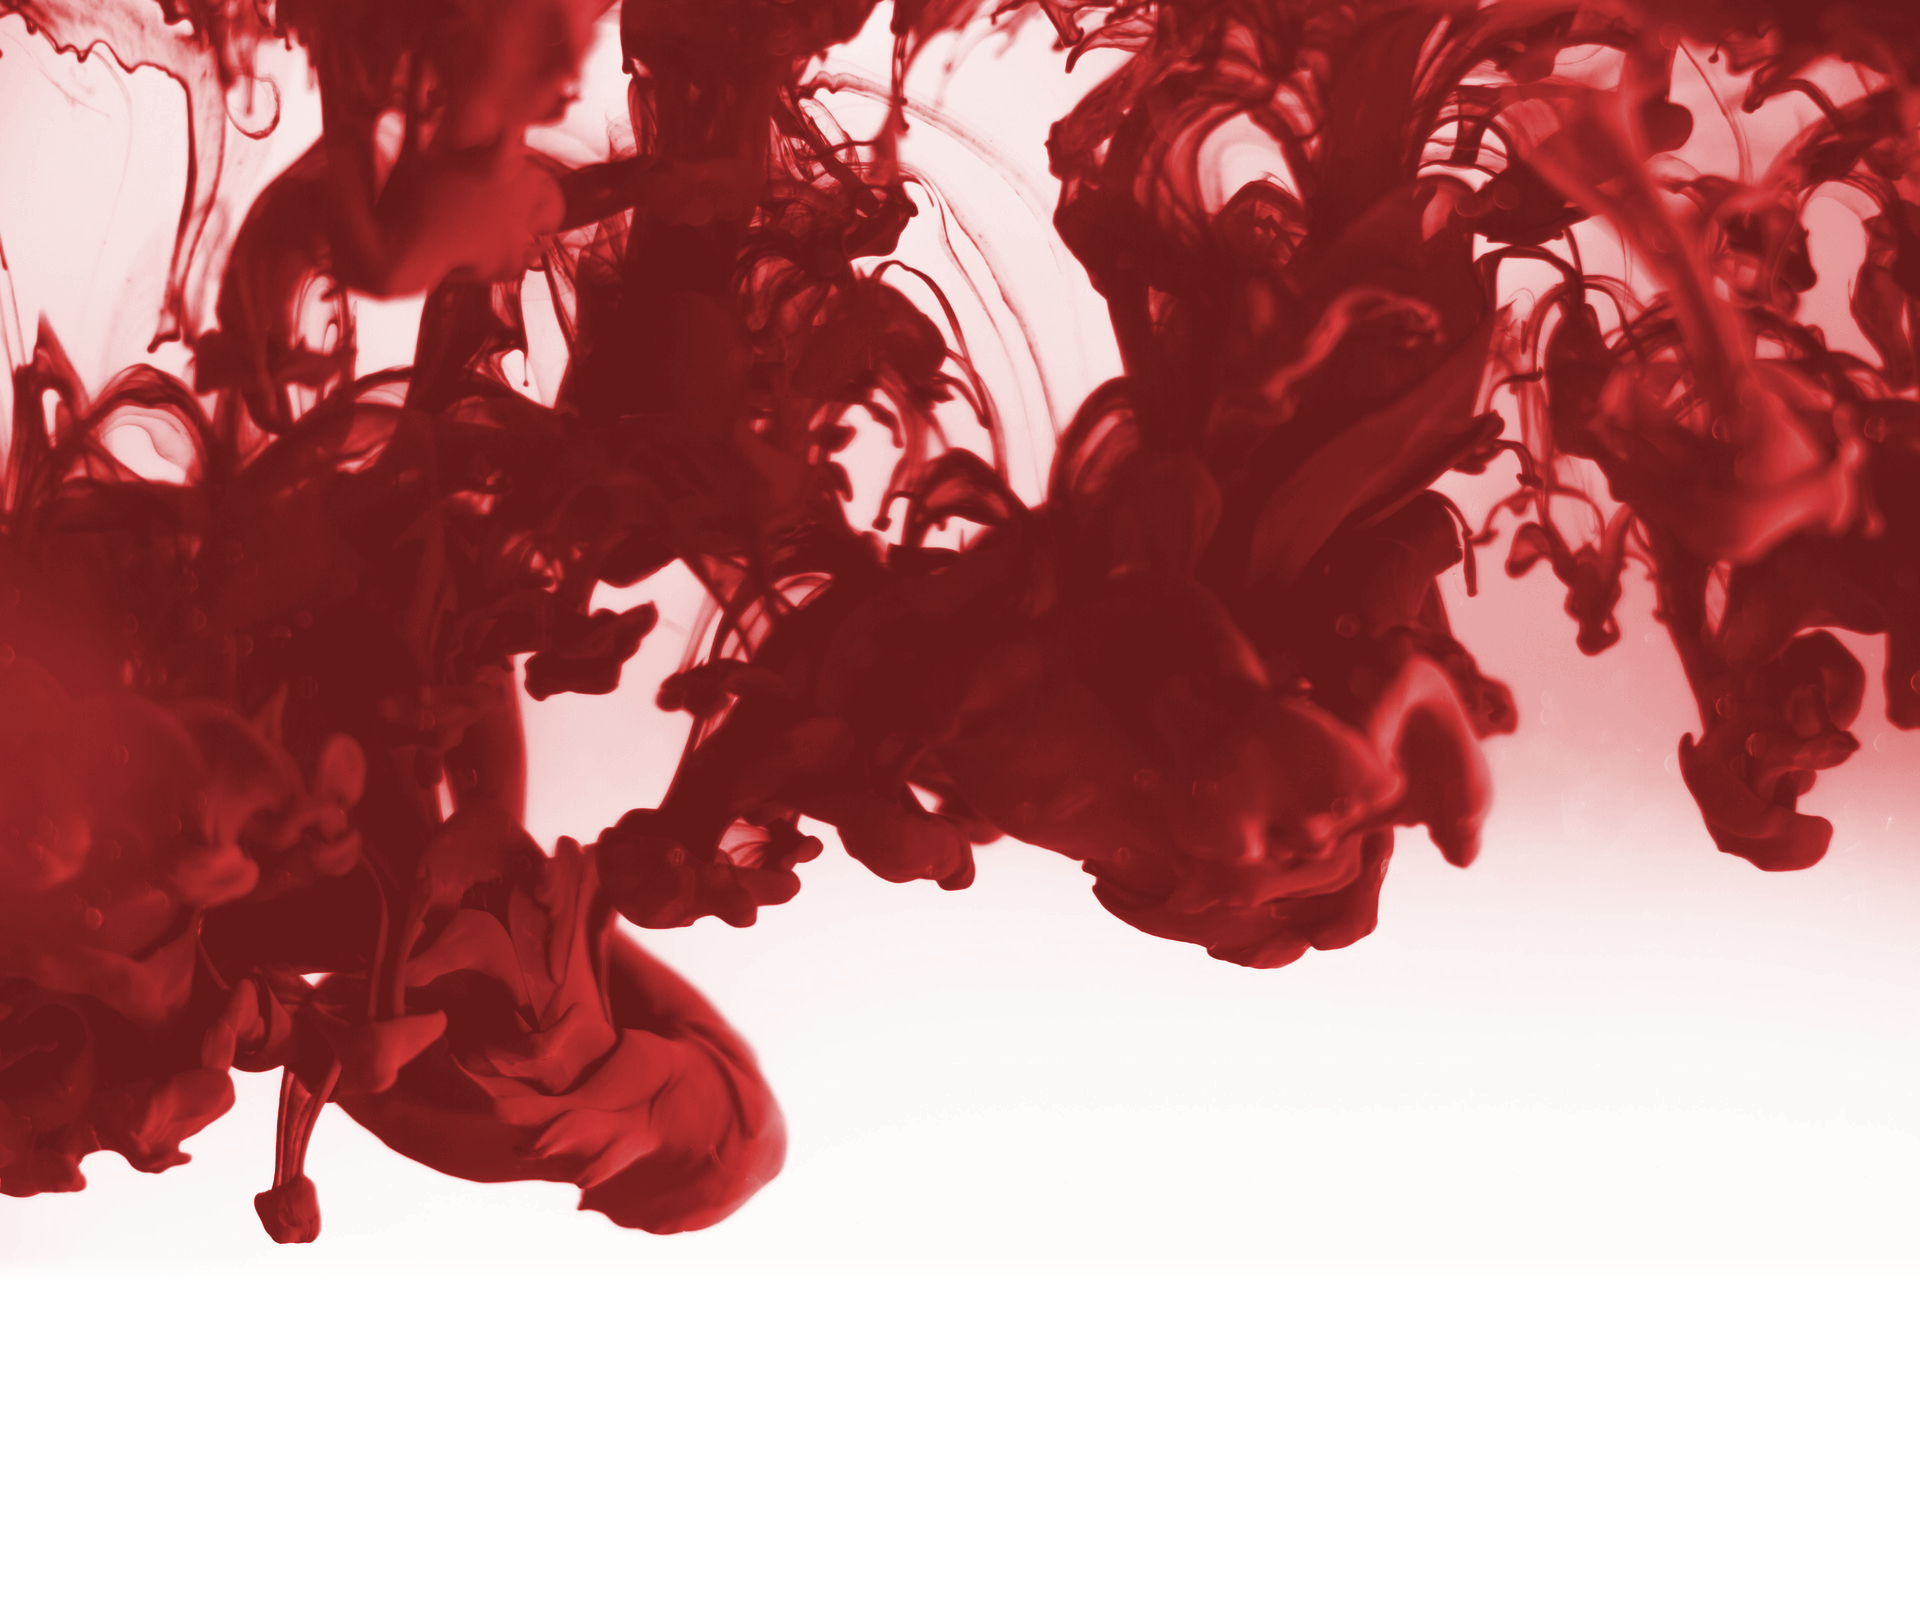 red_ink_background